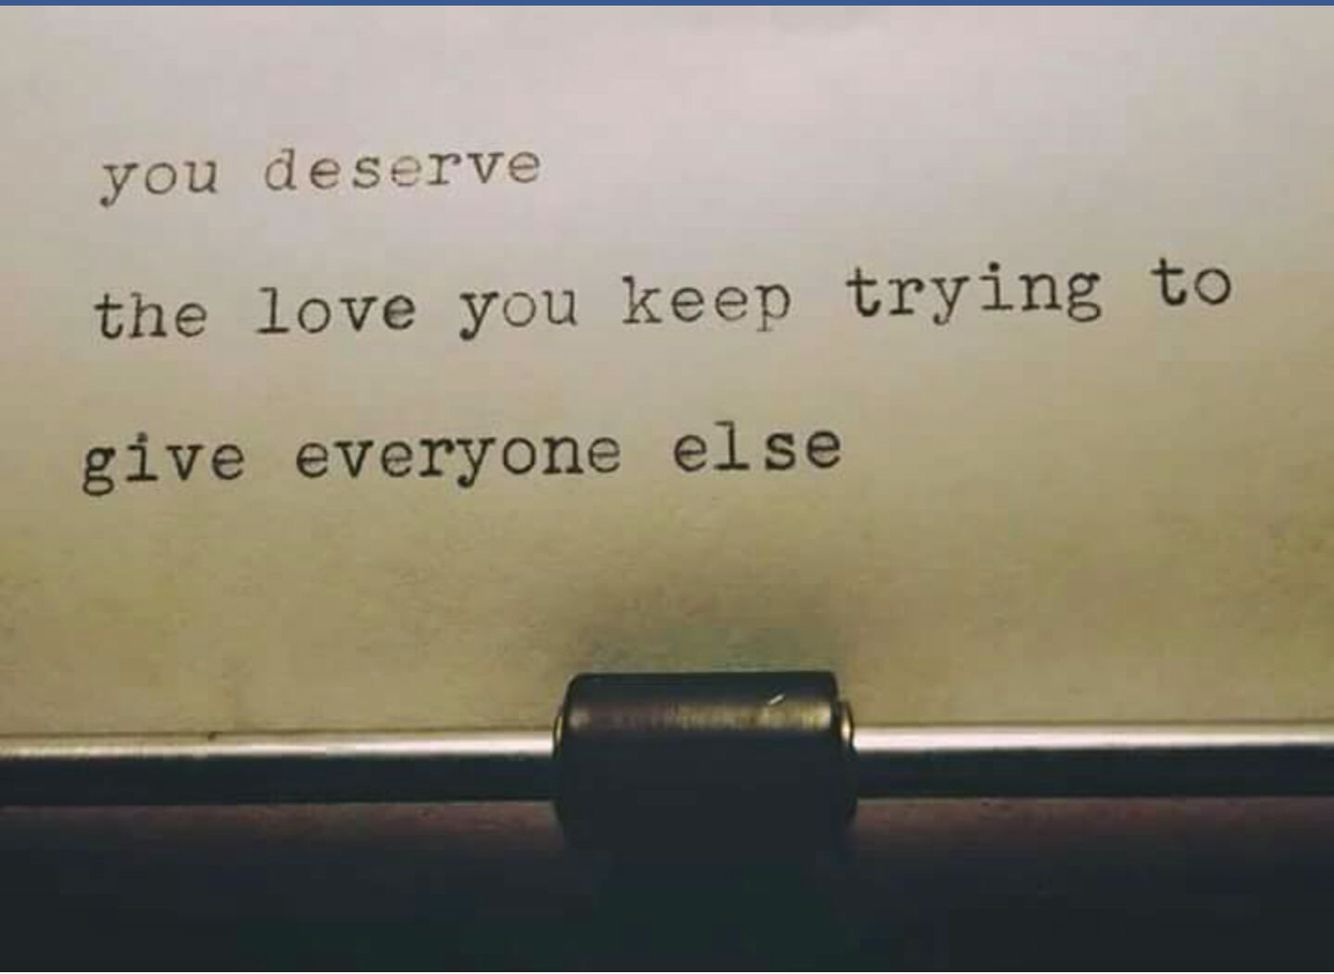 You deserve the love that remains